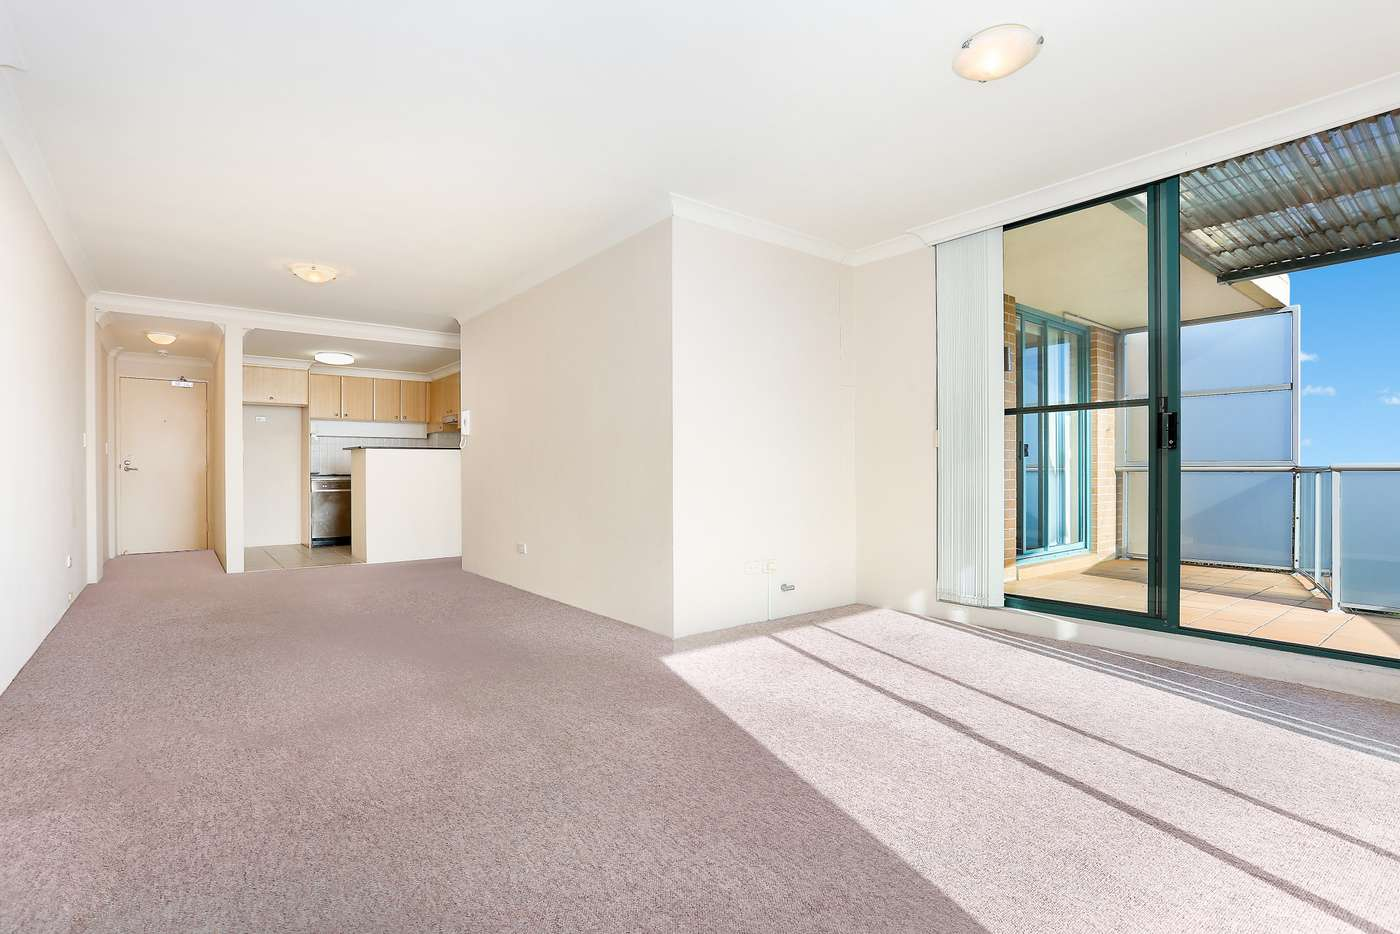 Main view of Homely apartment listing, 19/805 Anzac Parade, Maroubra NSW 2035